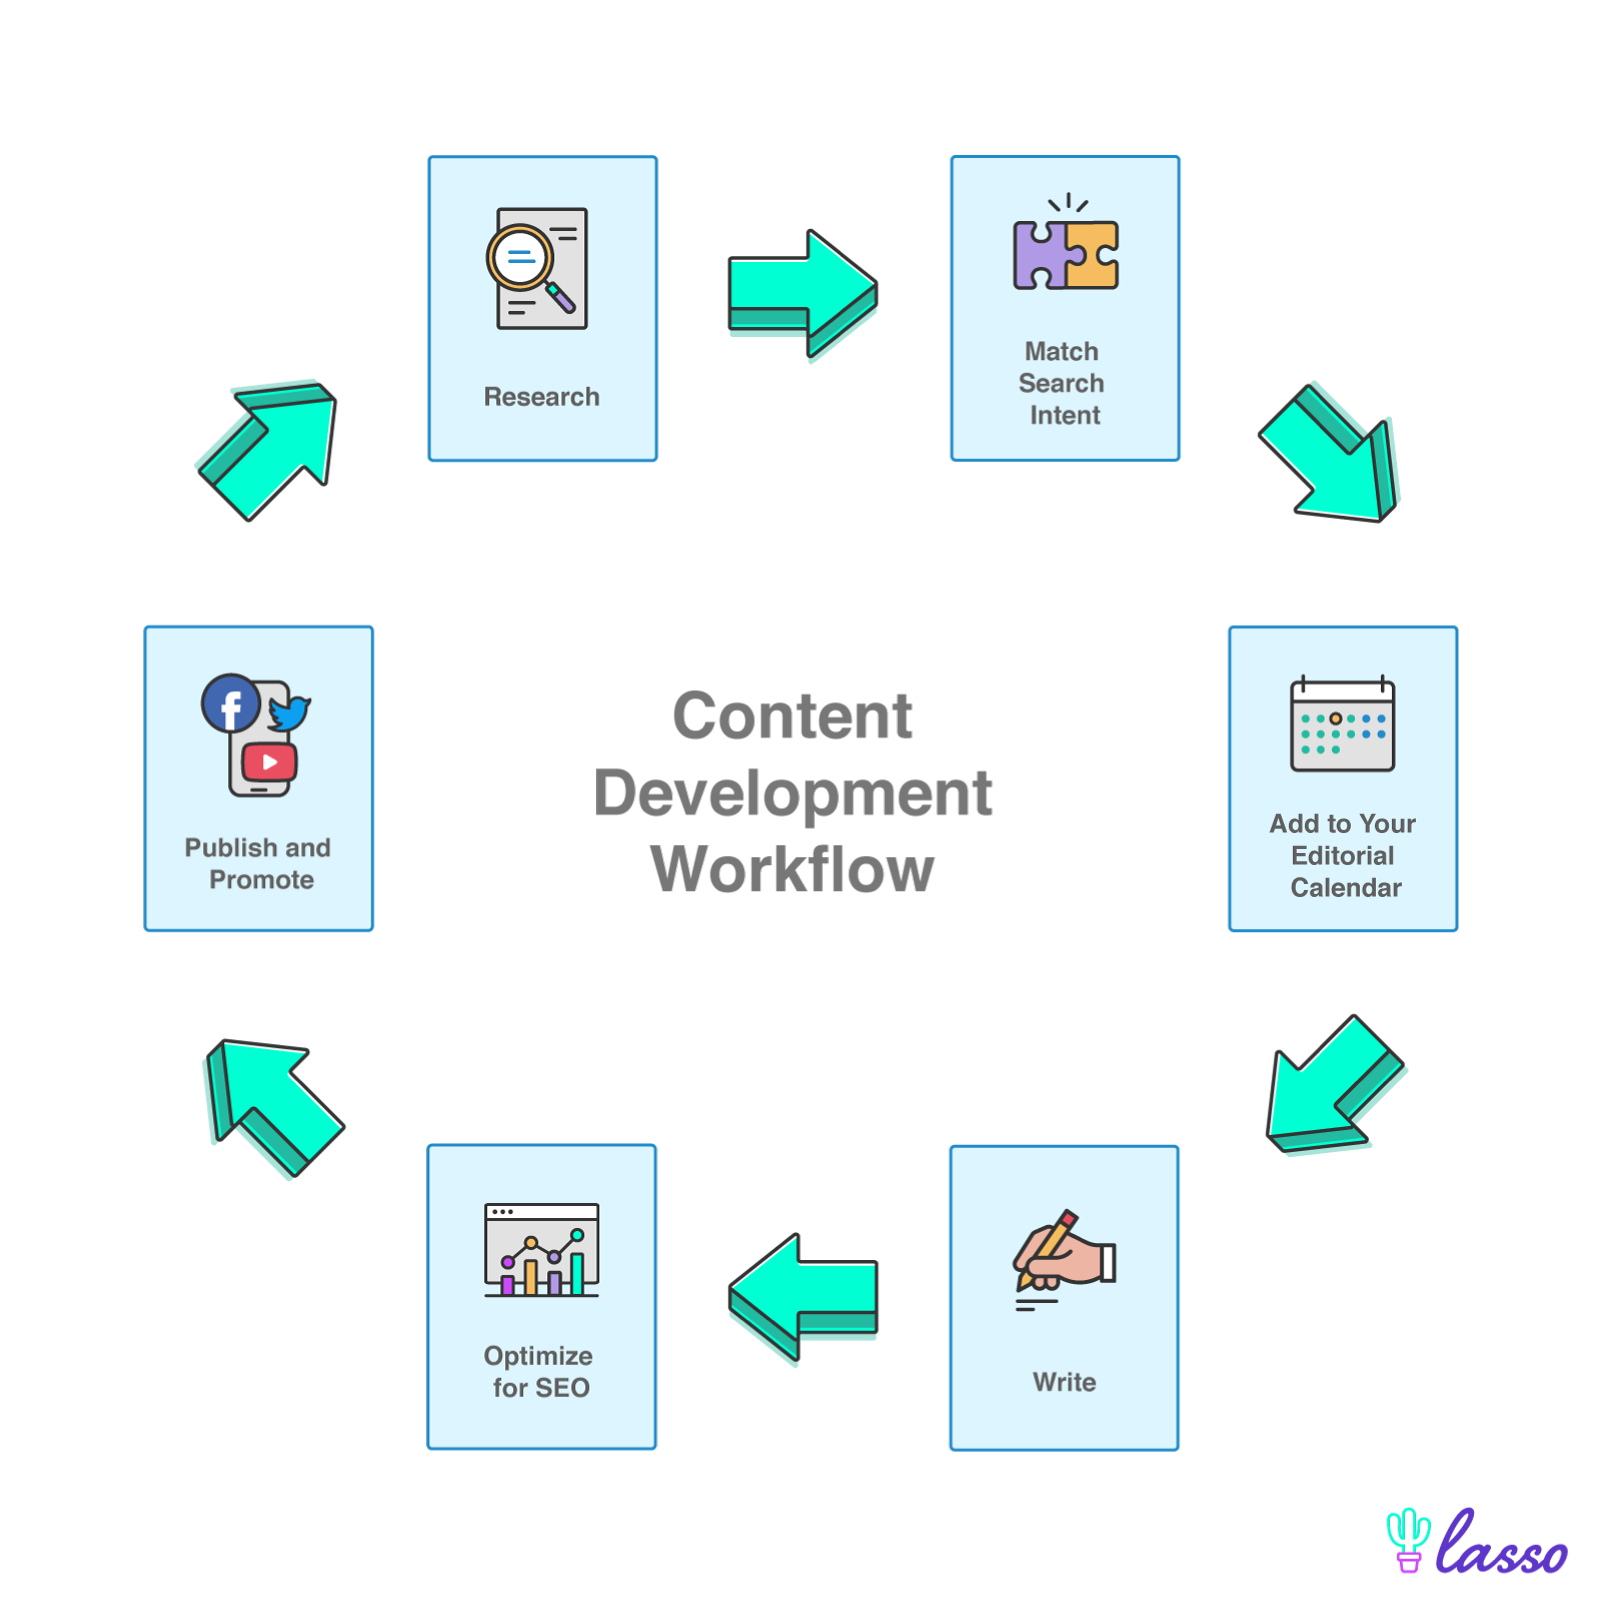 workflow in six steps of doing content development from research to publishing